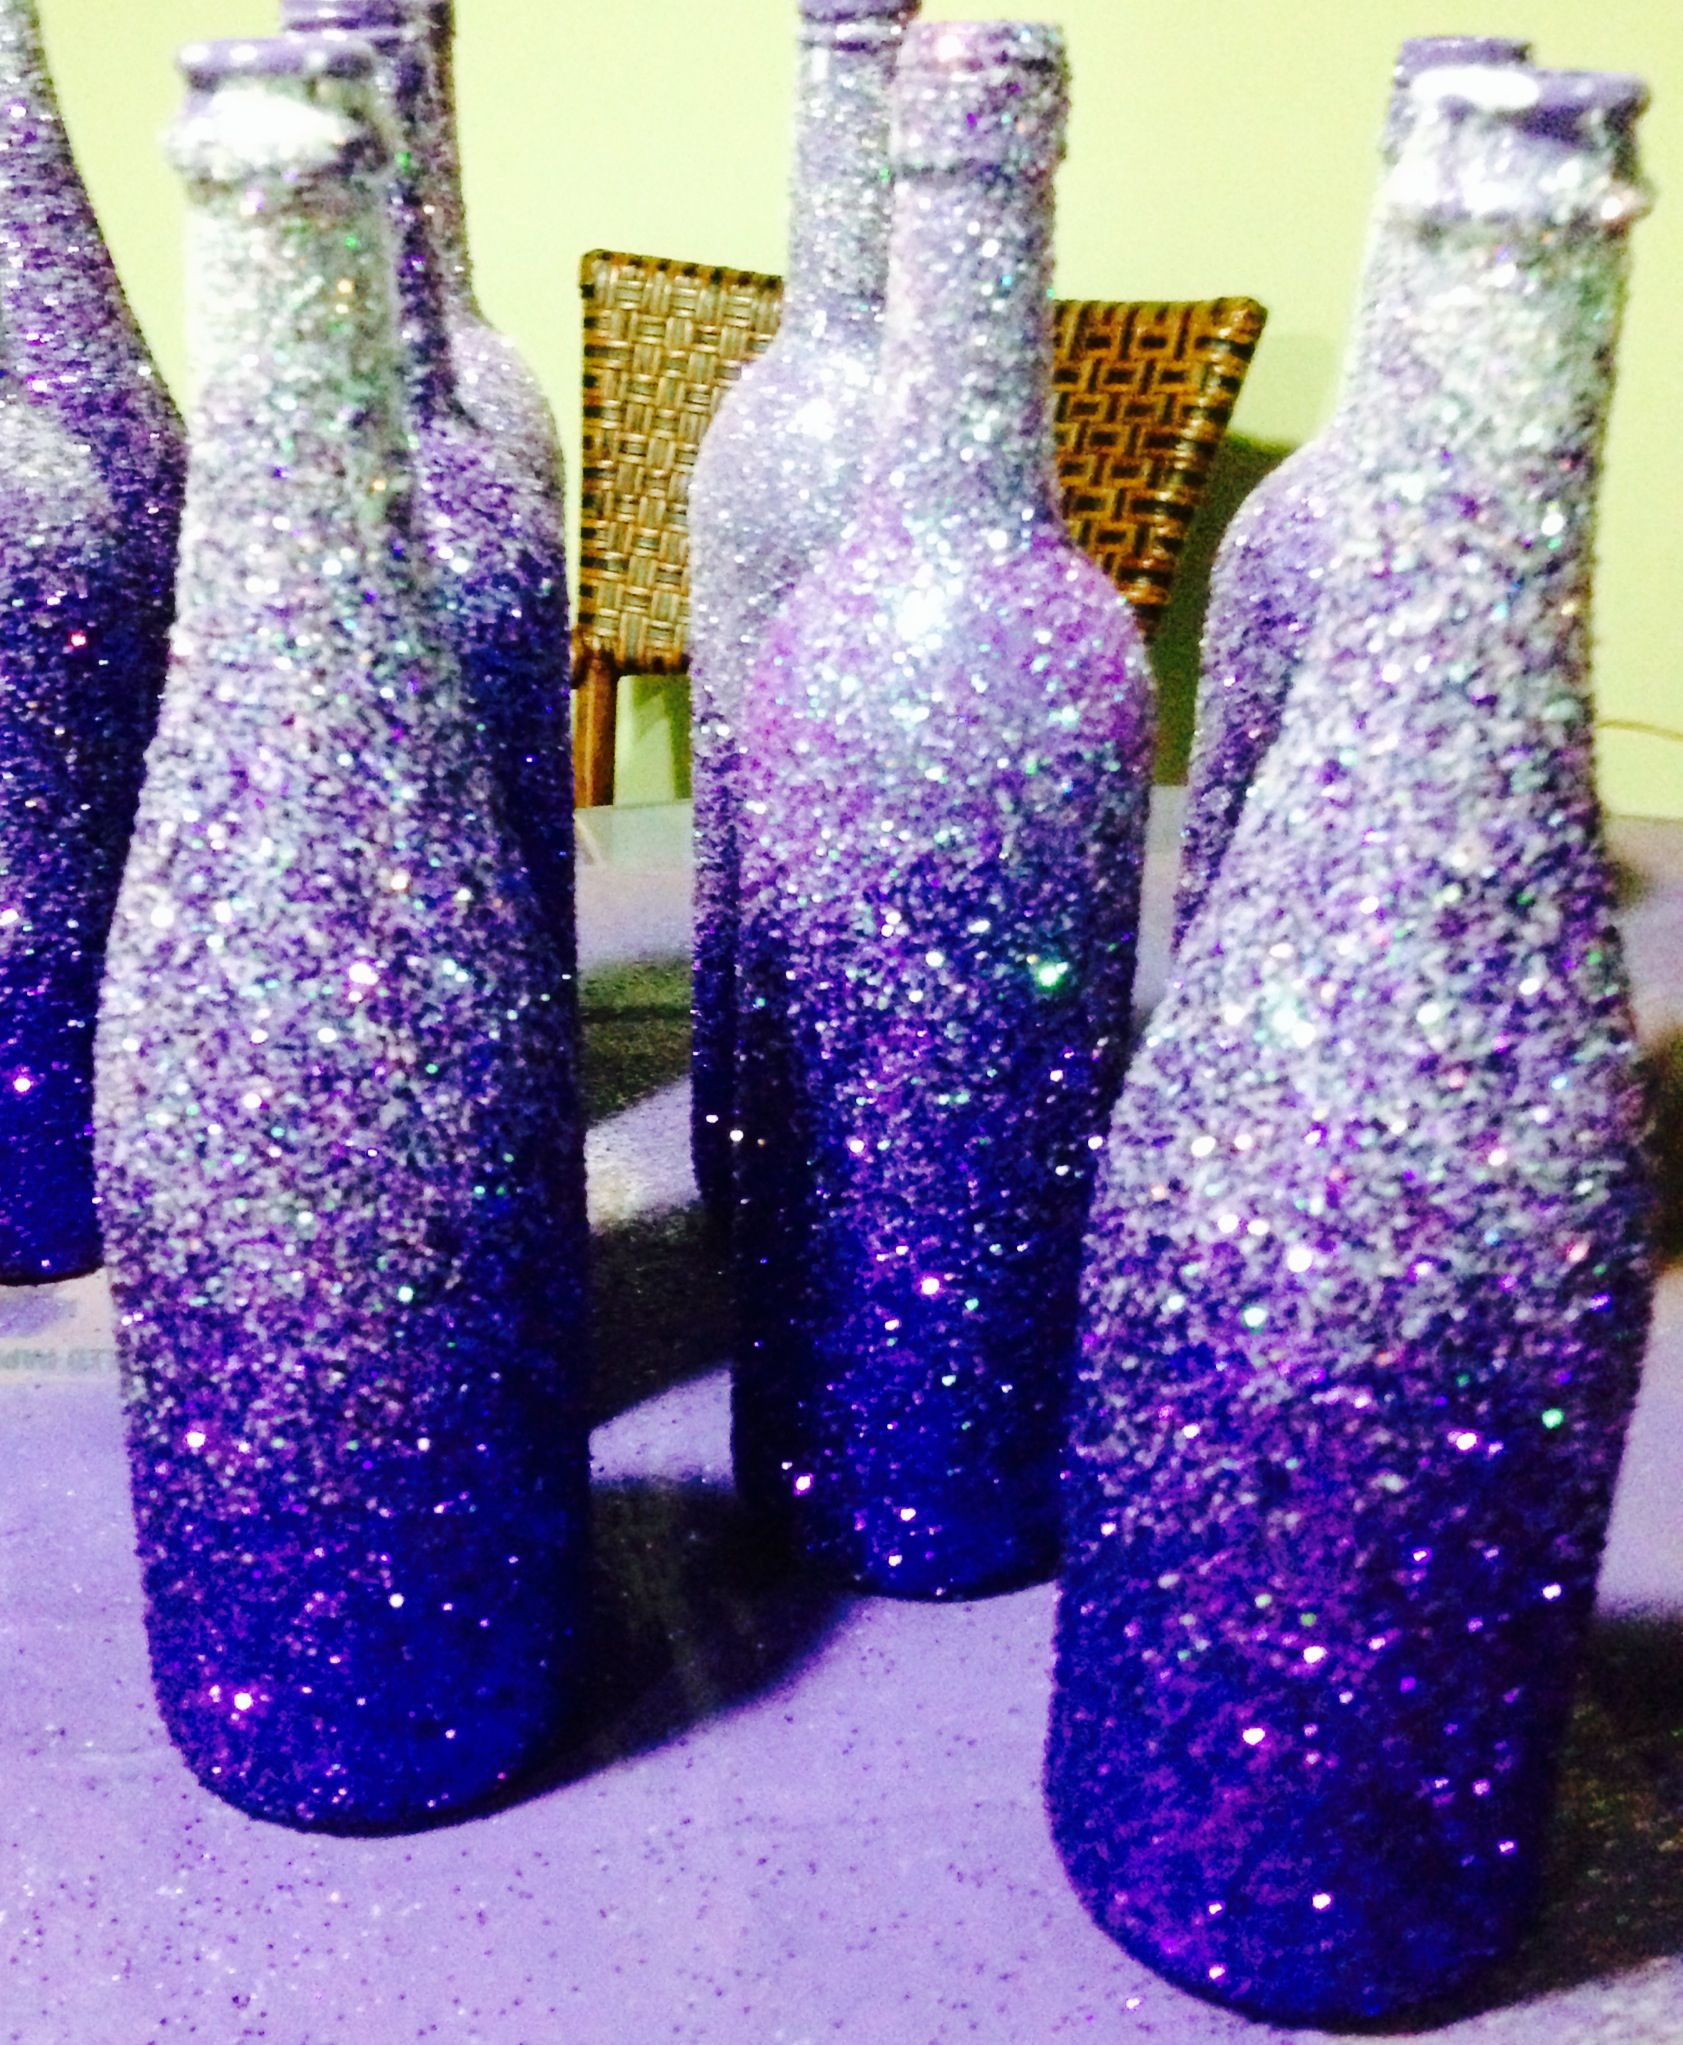 glittered wine bottles we spray painted the bottles with purple paint. Black Bedroom Furniture Sets. Home Design Ideas